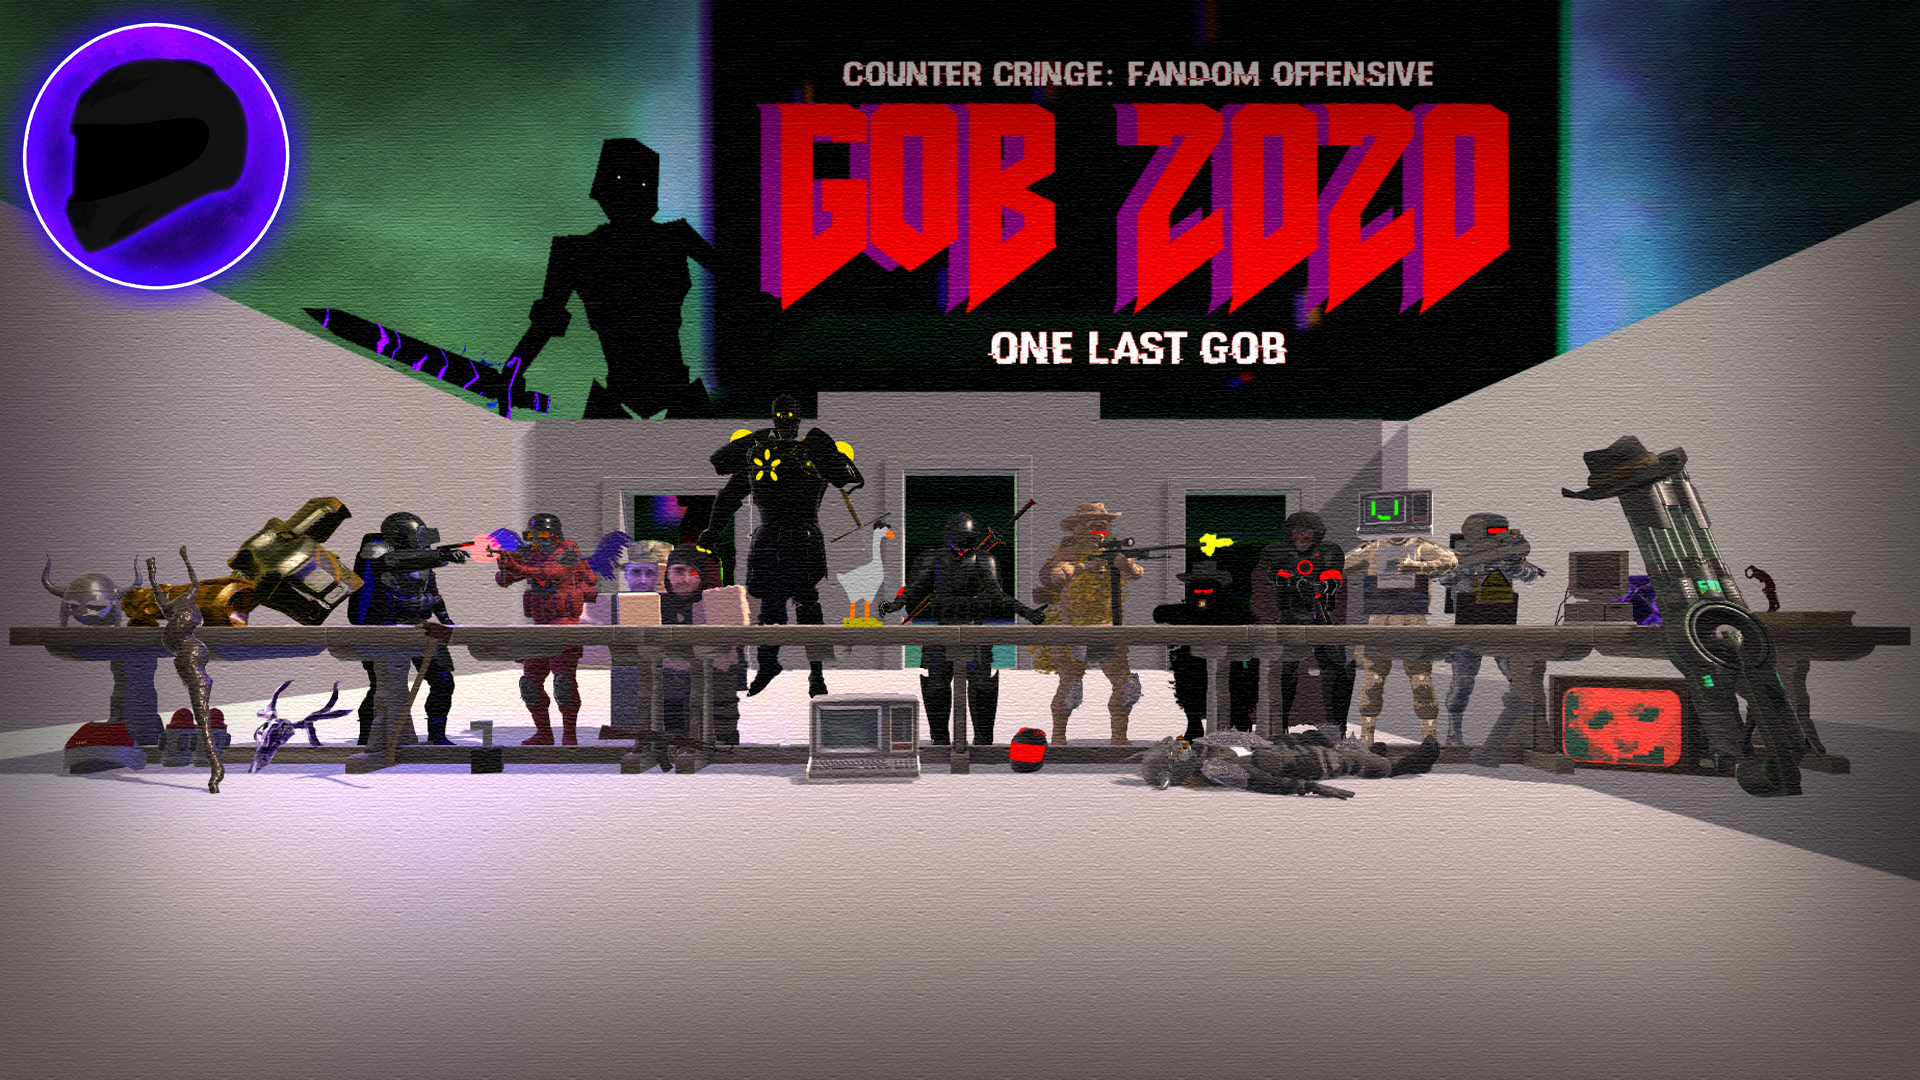 GoB 2020 - One Last GoB (Character/Class Based Multiplayer Shooter)(Counter Cringe/Fandom Offensive)